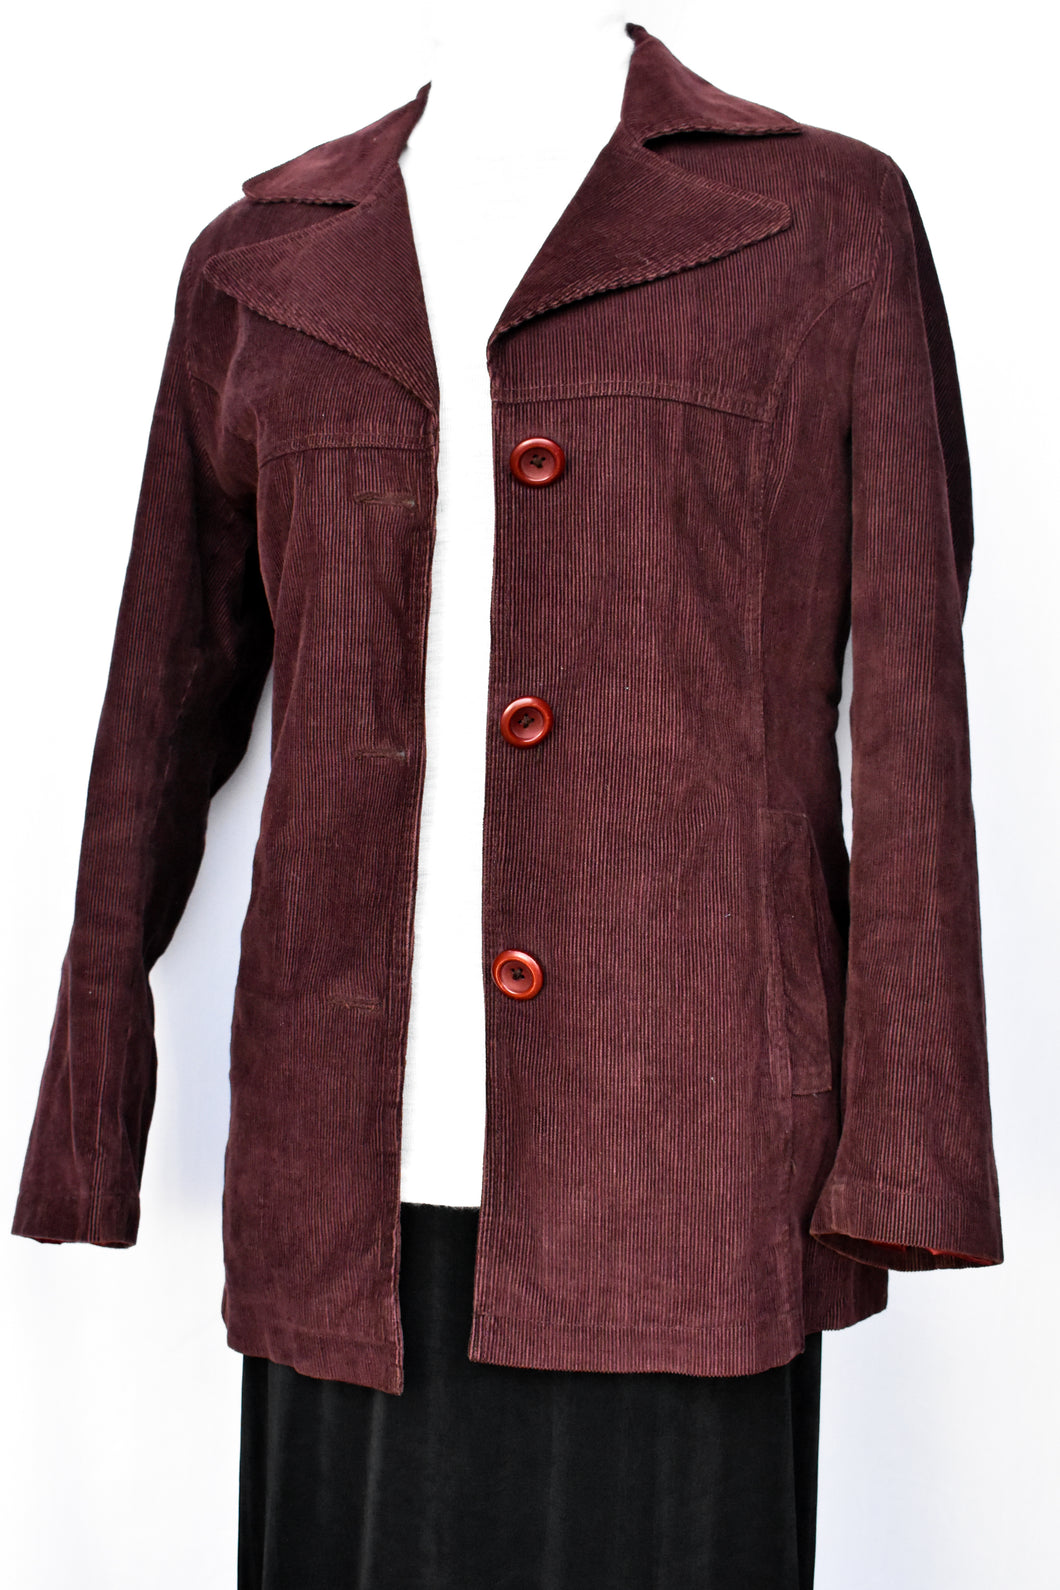 Gipsy cotton cord jacket, size 2XL